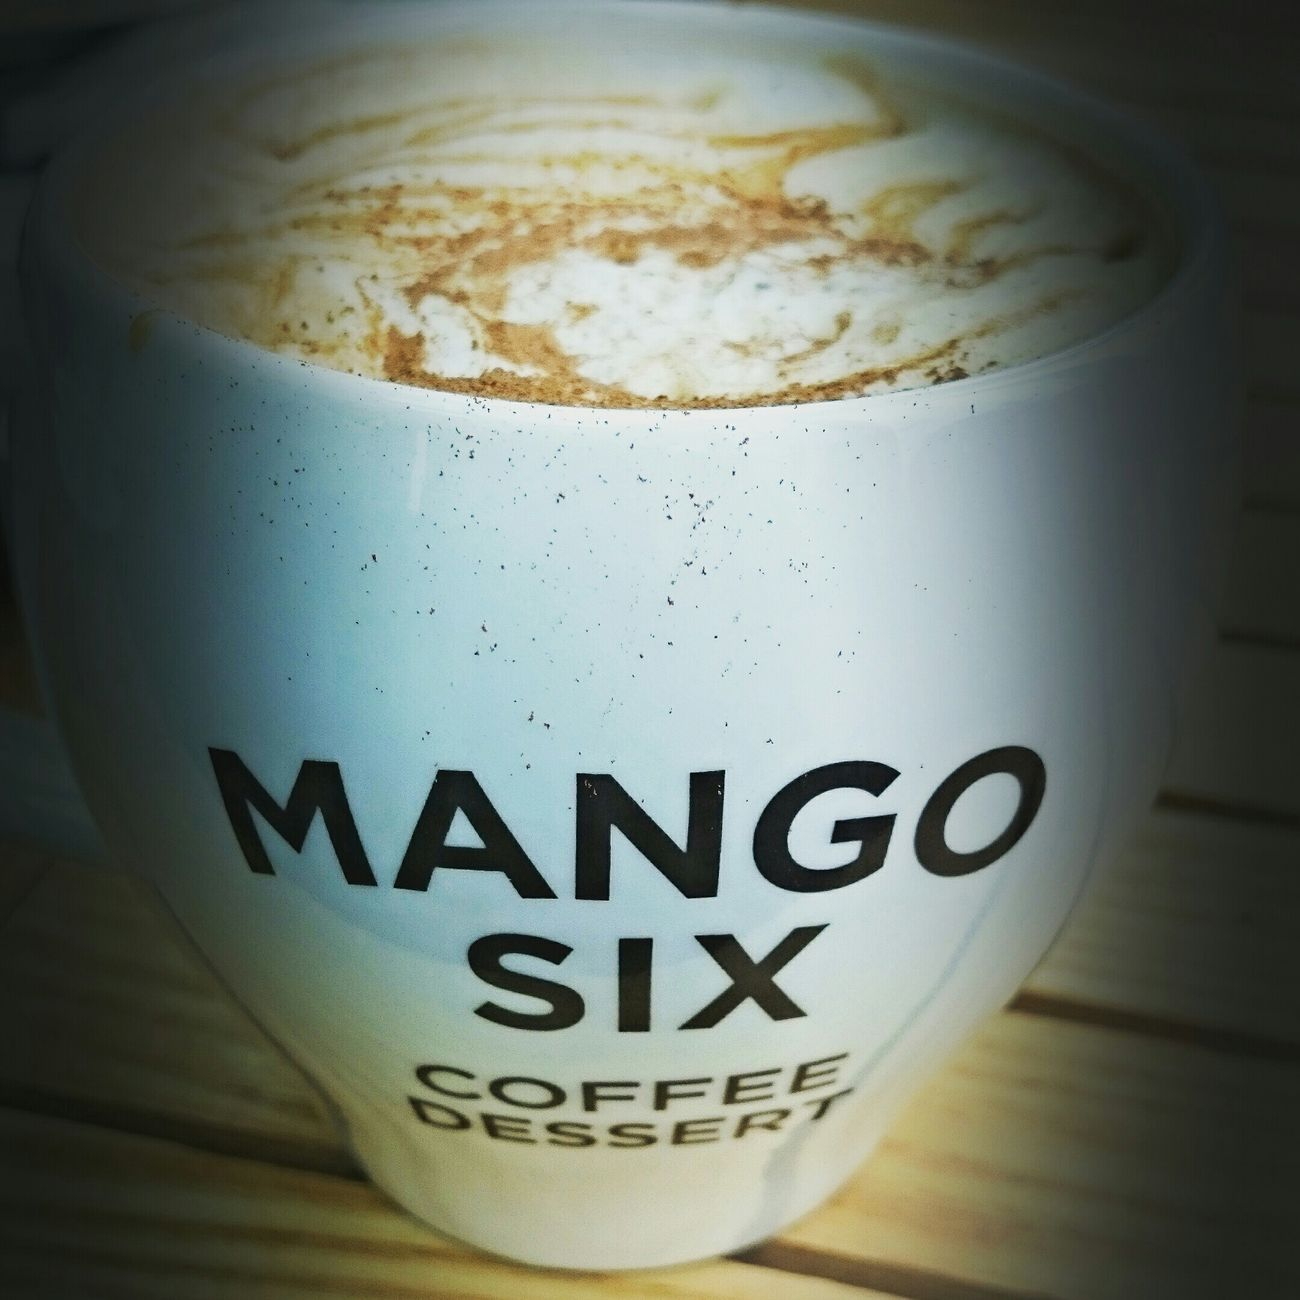 Mangosix😋 Coffee